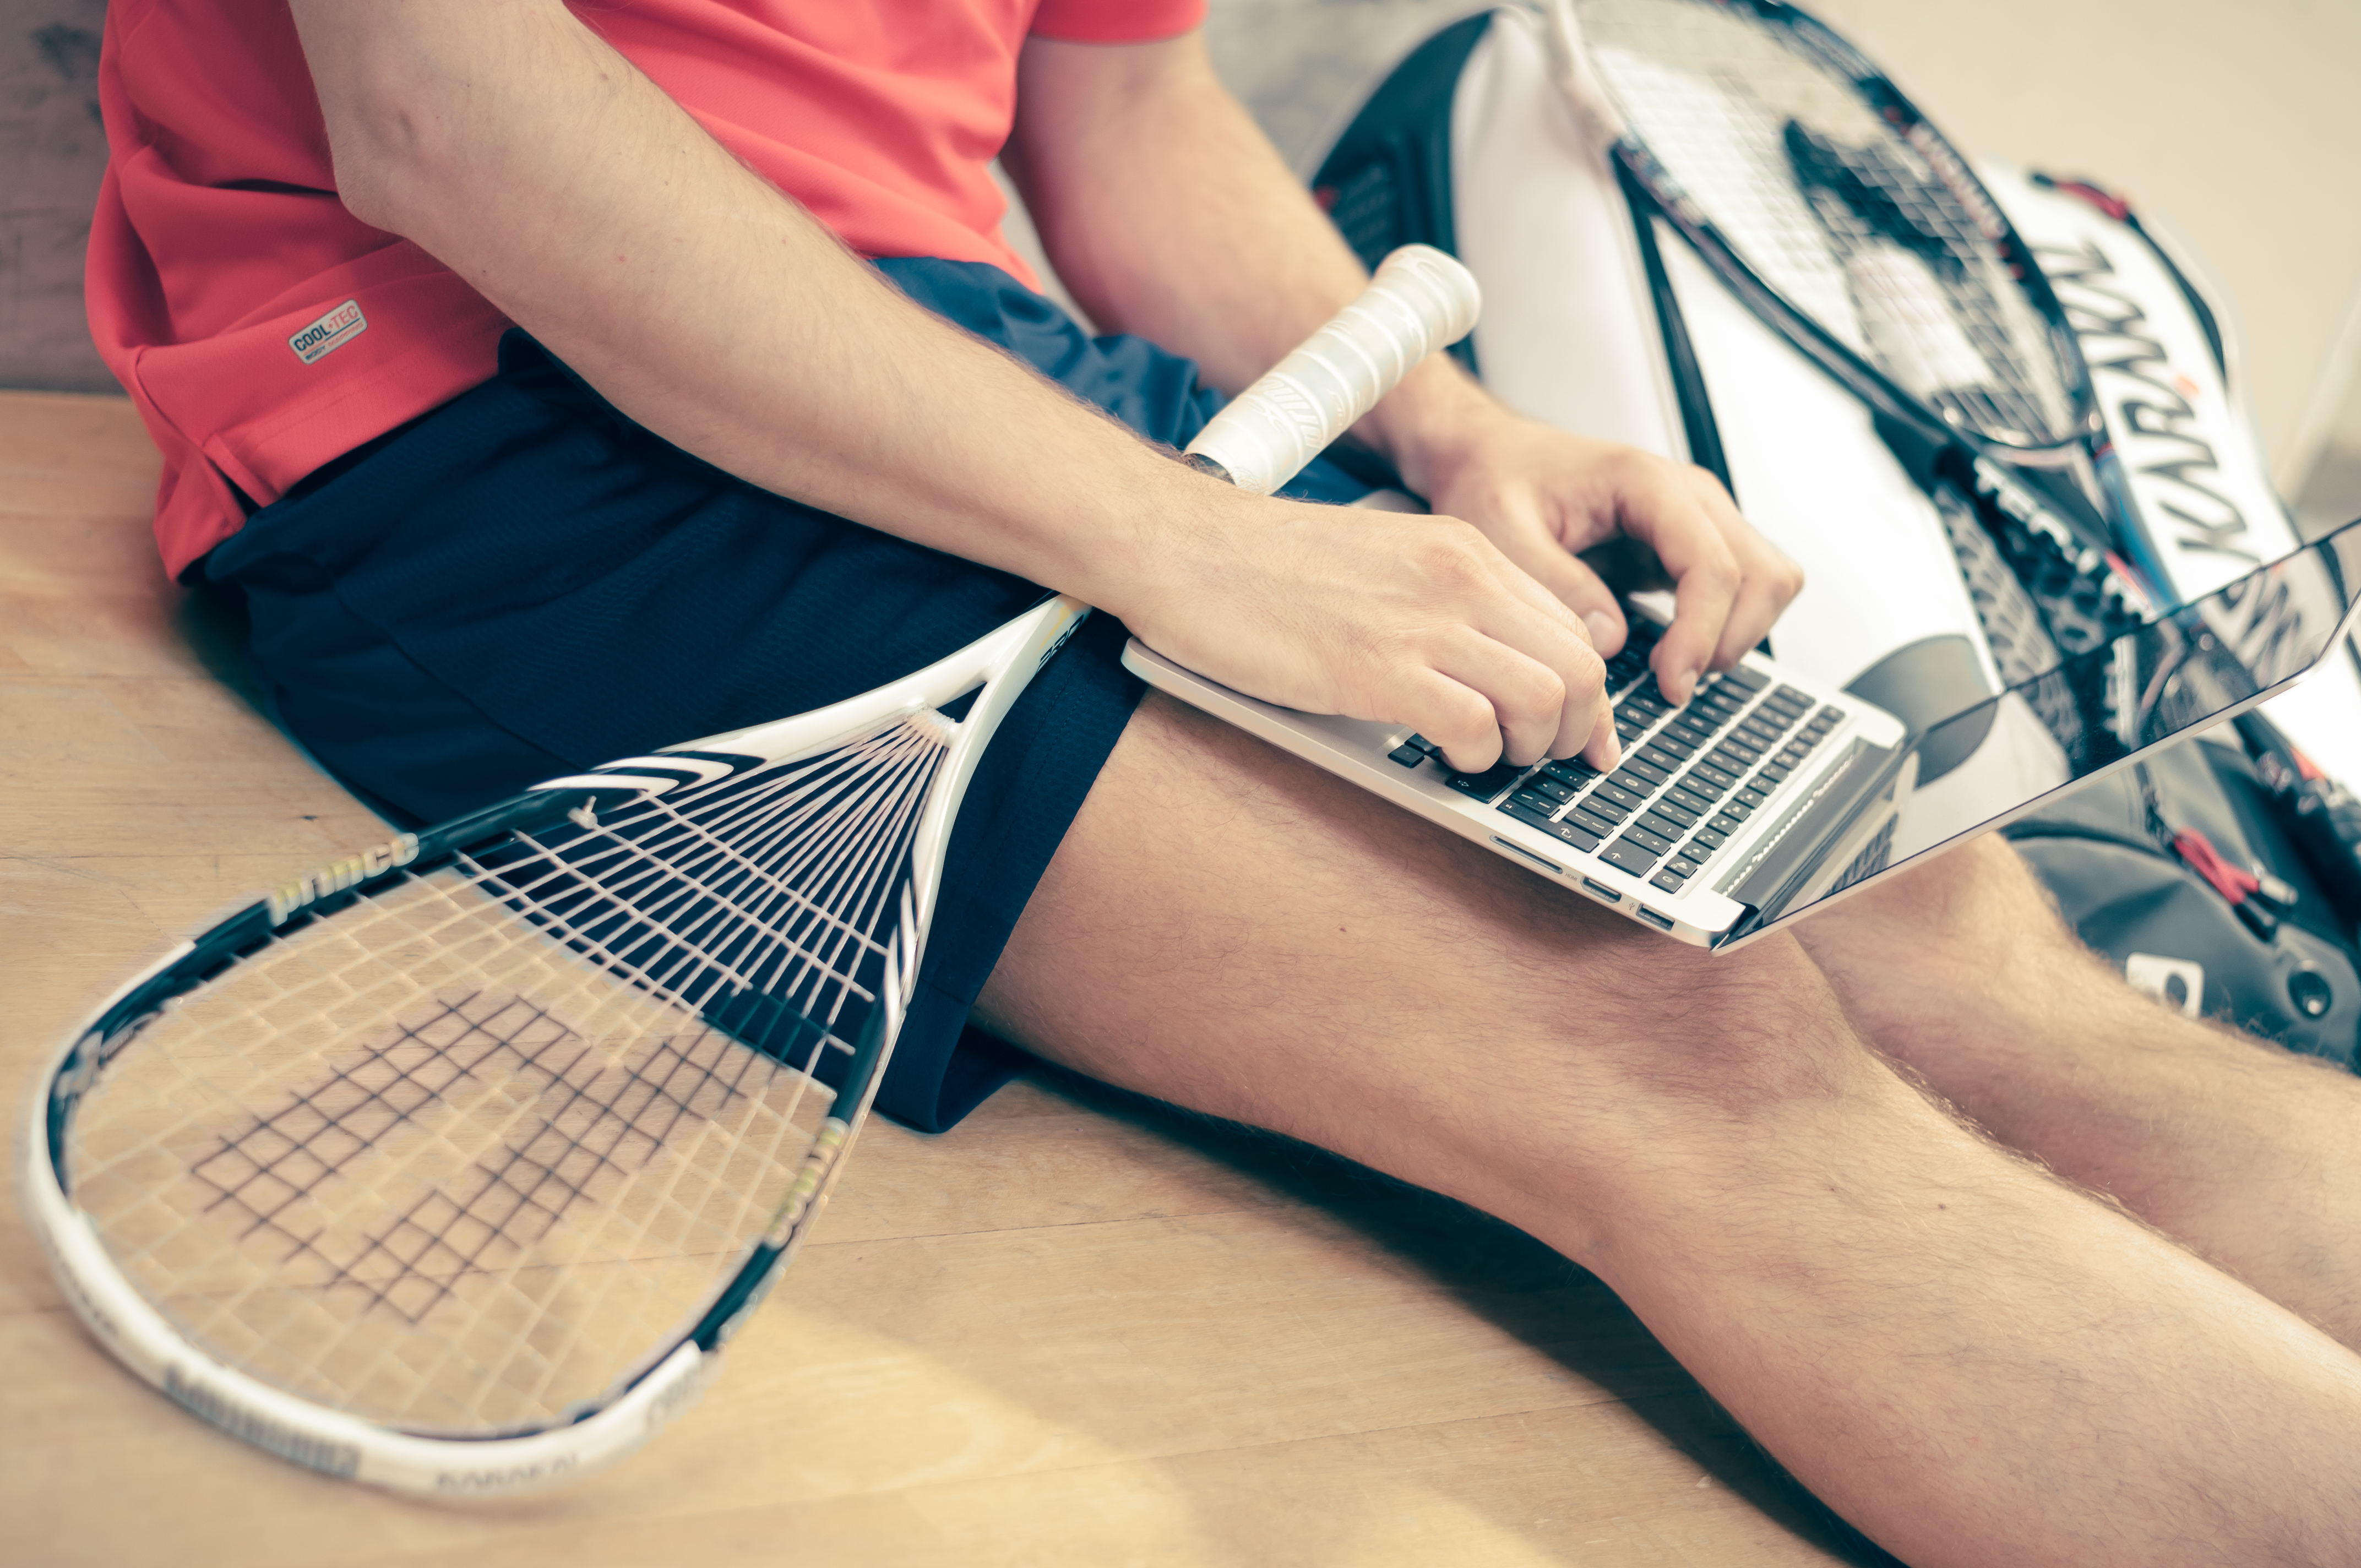 A man with a tennis racket on his lap working on a laptop